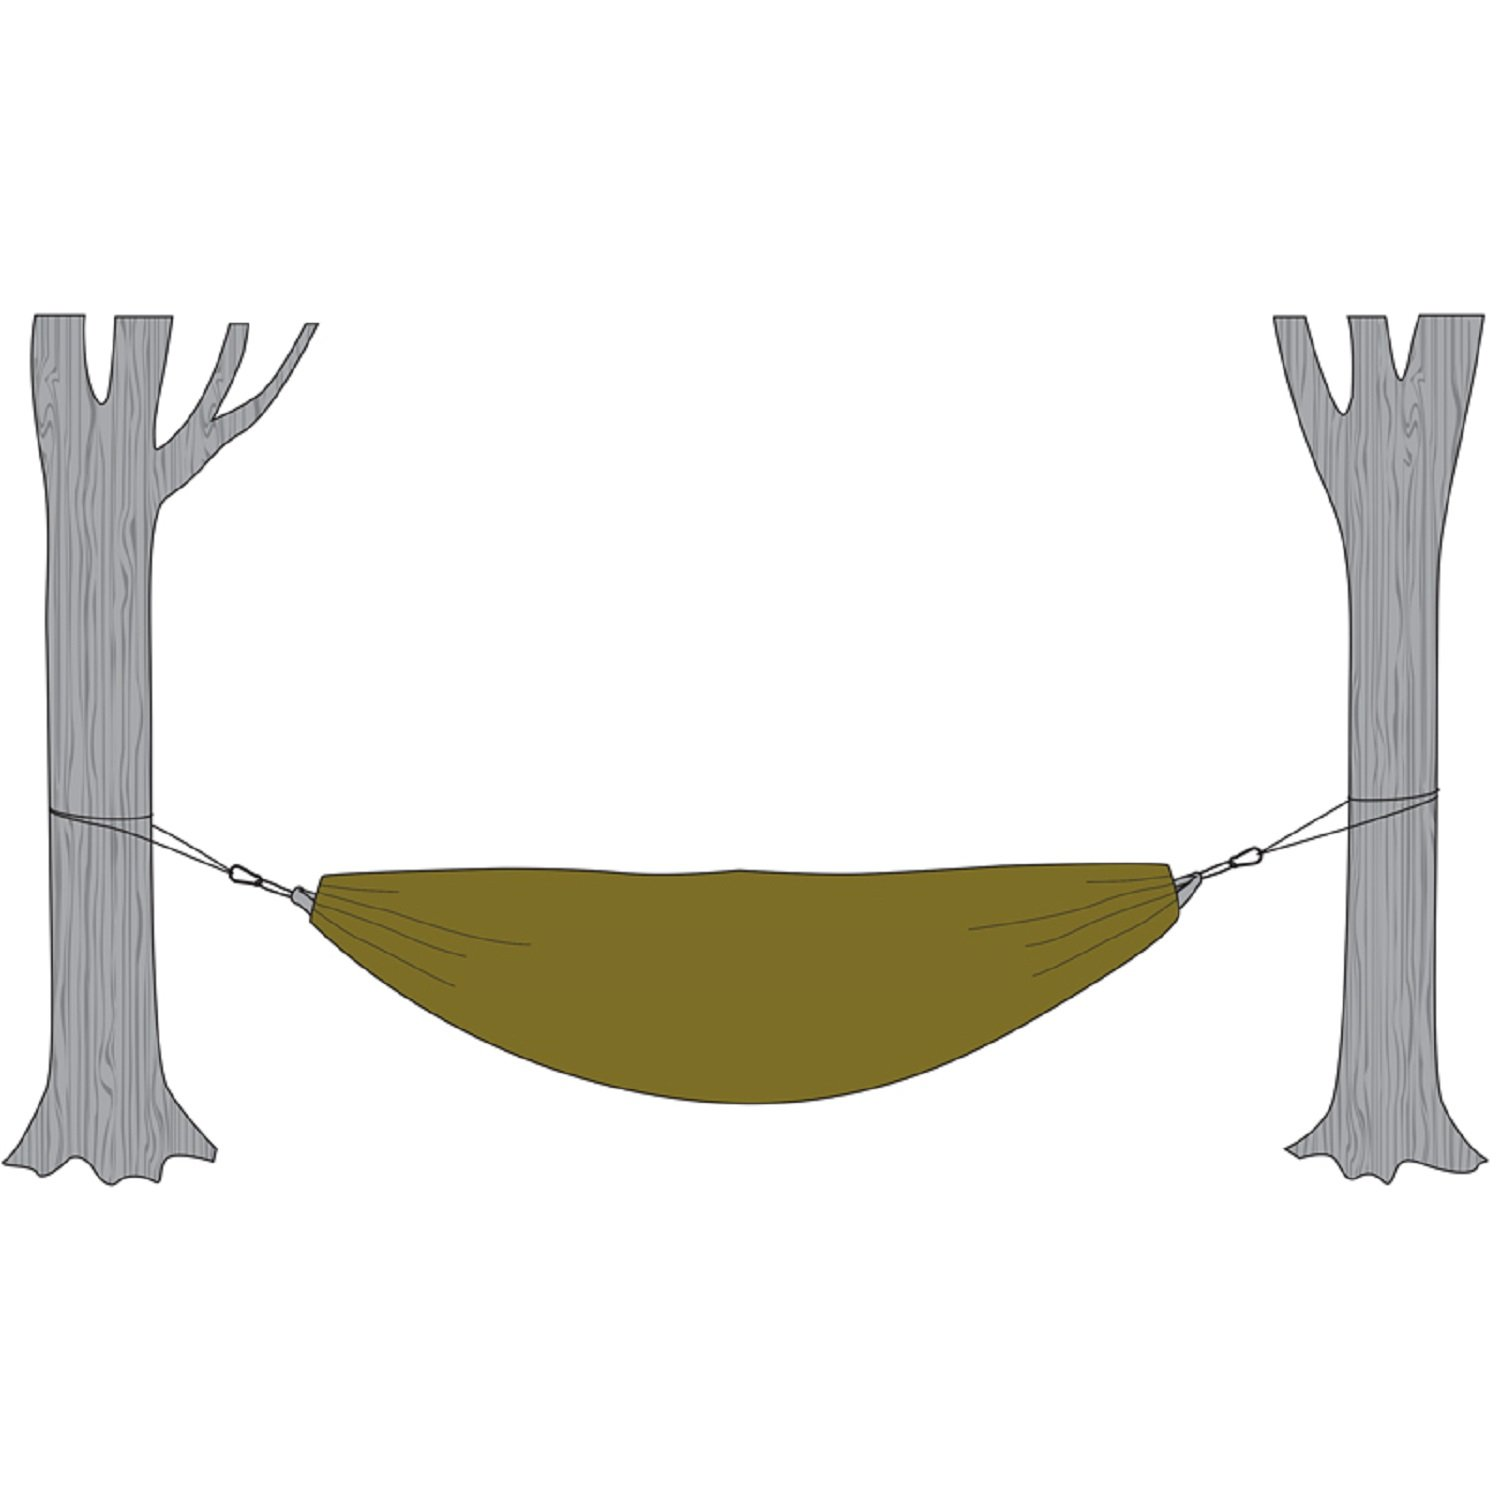 Amazon.com : Snugpak Hammock Cocoon With Travelsoft Filling, Olive : Sports  U0026 Outdoors